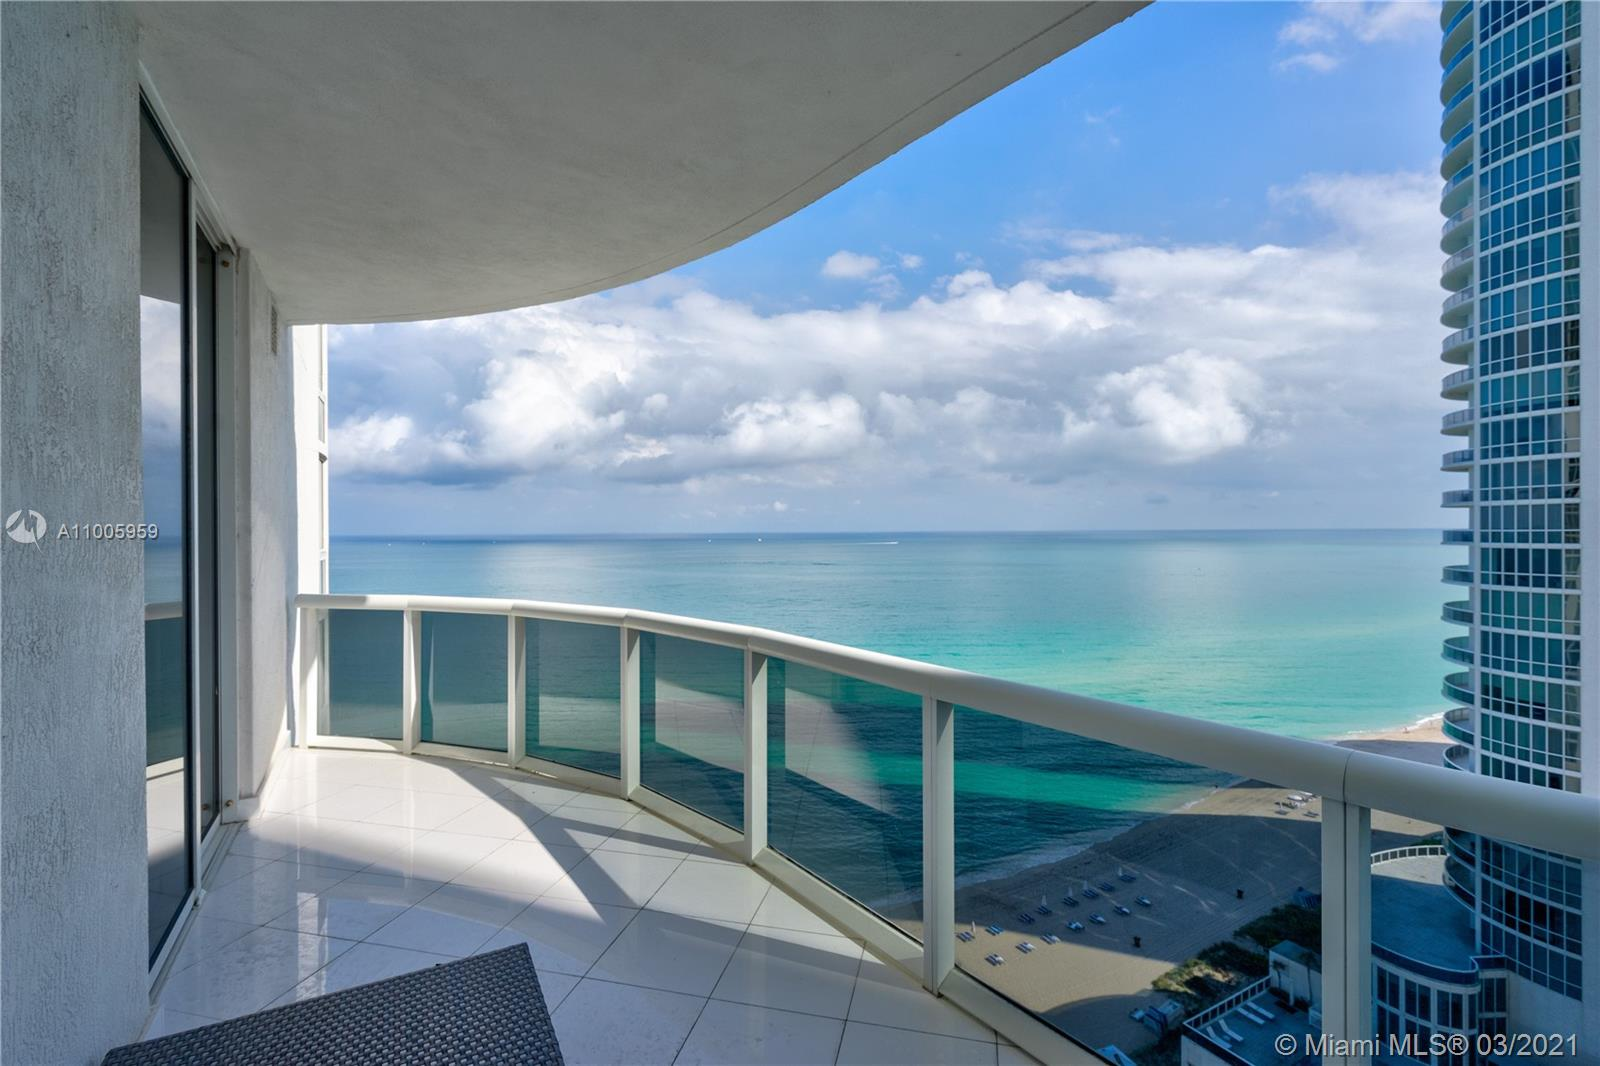 Gorgeous flow through fully renovated and furnished unit in the prestigious Trump Towers with panoramic SE/NE Ocean, intracoastal and city views from the 17th floor. Elegant 10' ceilings. Great floor plan. Full service building: Gym, spa, fully staffed restaurant, pool and beach attendant, 24 hours security, 1 Assigned park space and valet.